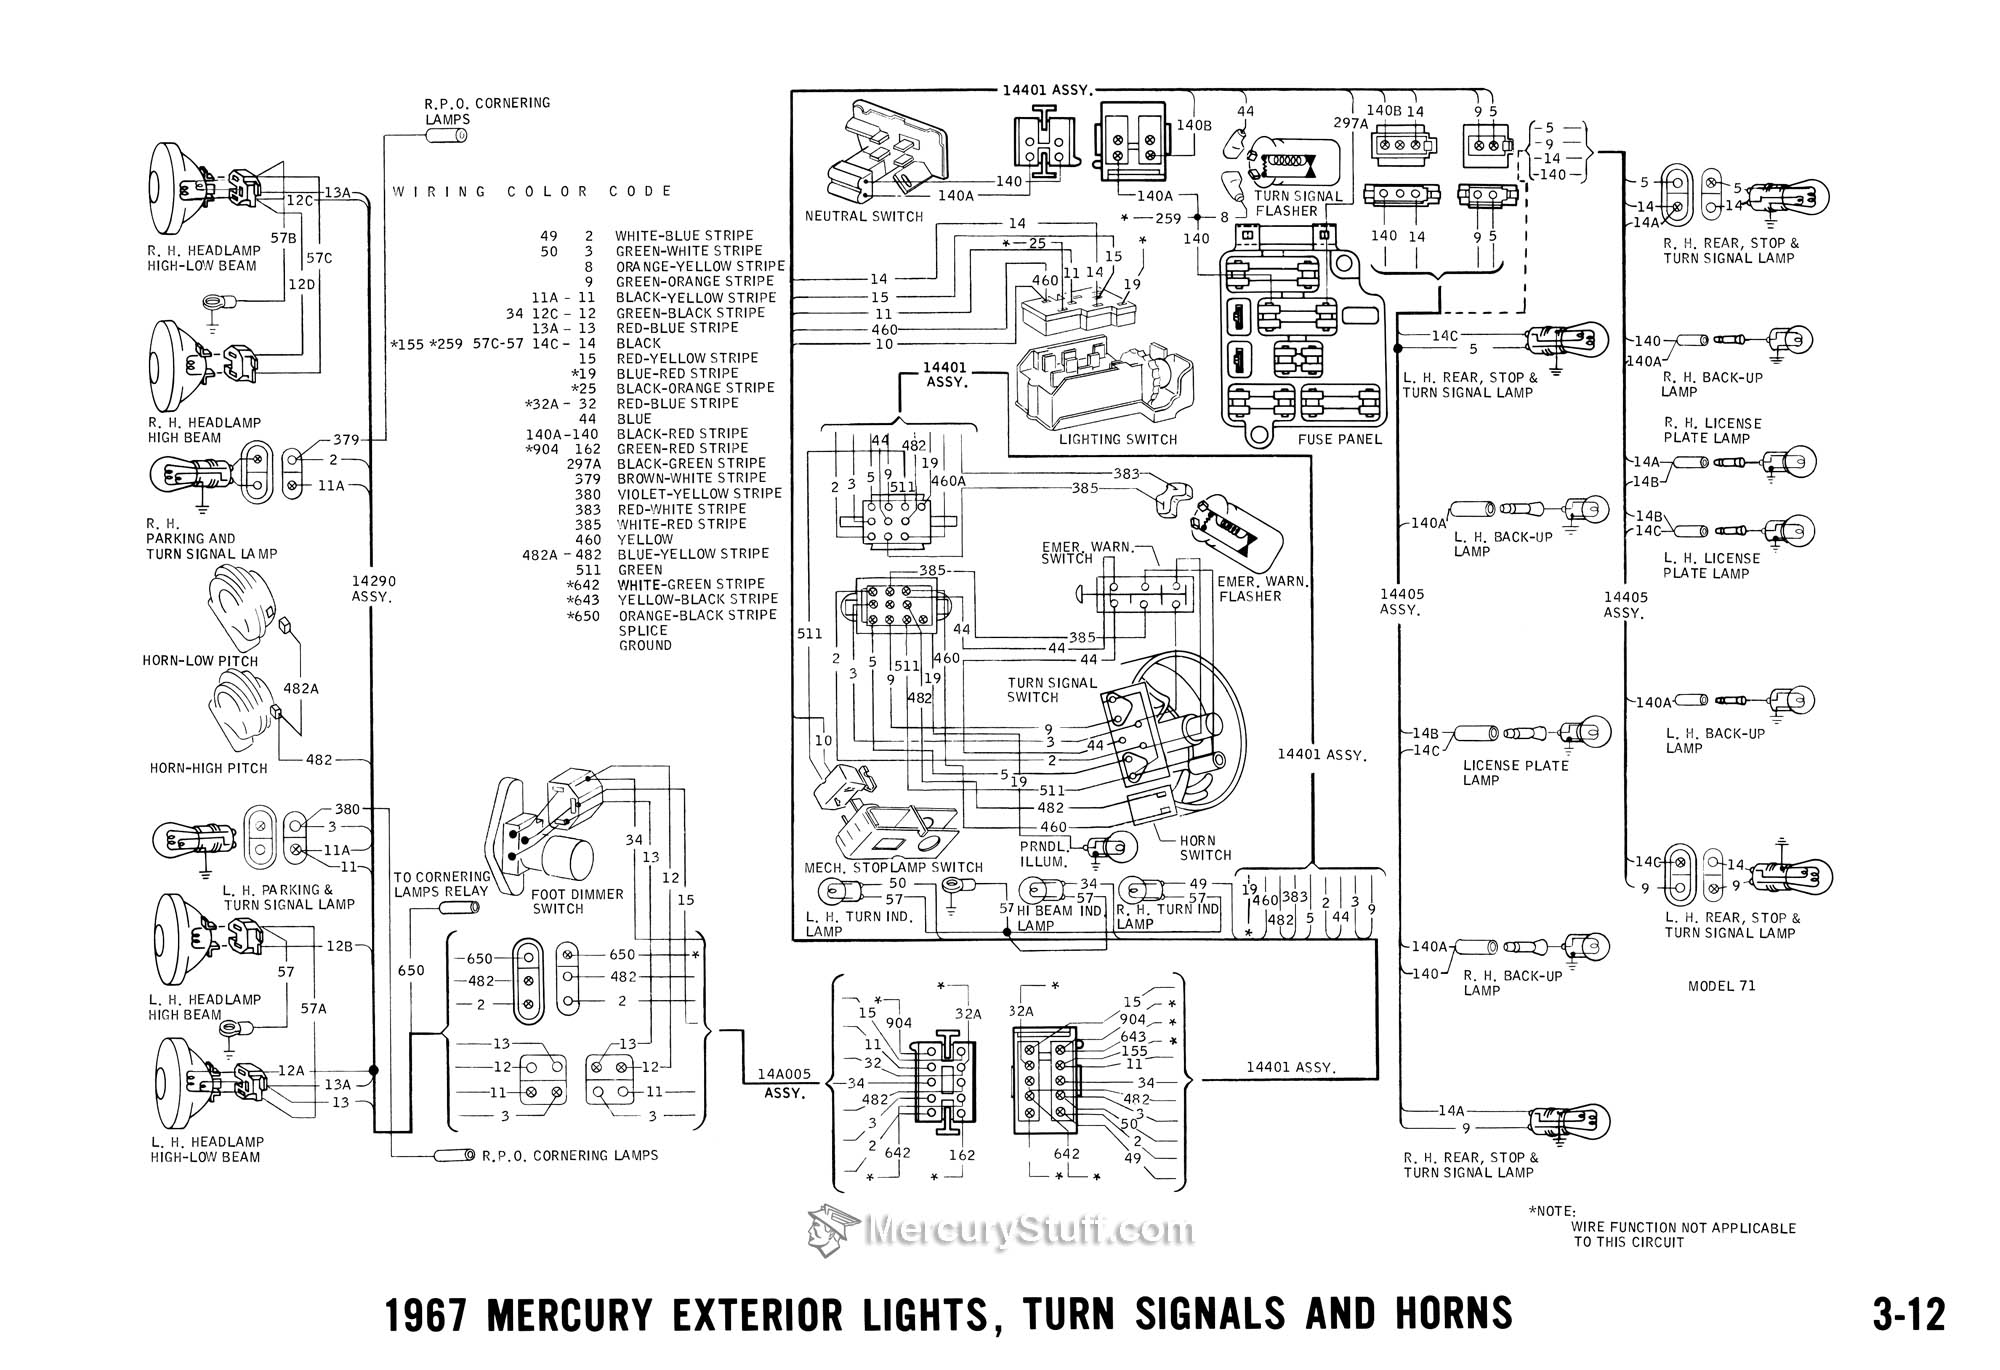 1967 mercury exterior lights turn signals horns cornering lights 1966 mercury mercury forum mercury 67 cougar turn signal wiring diagram at gsmx.co